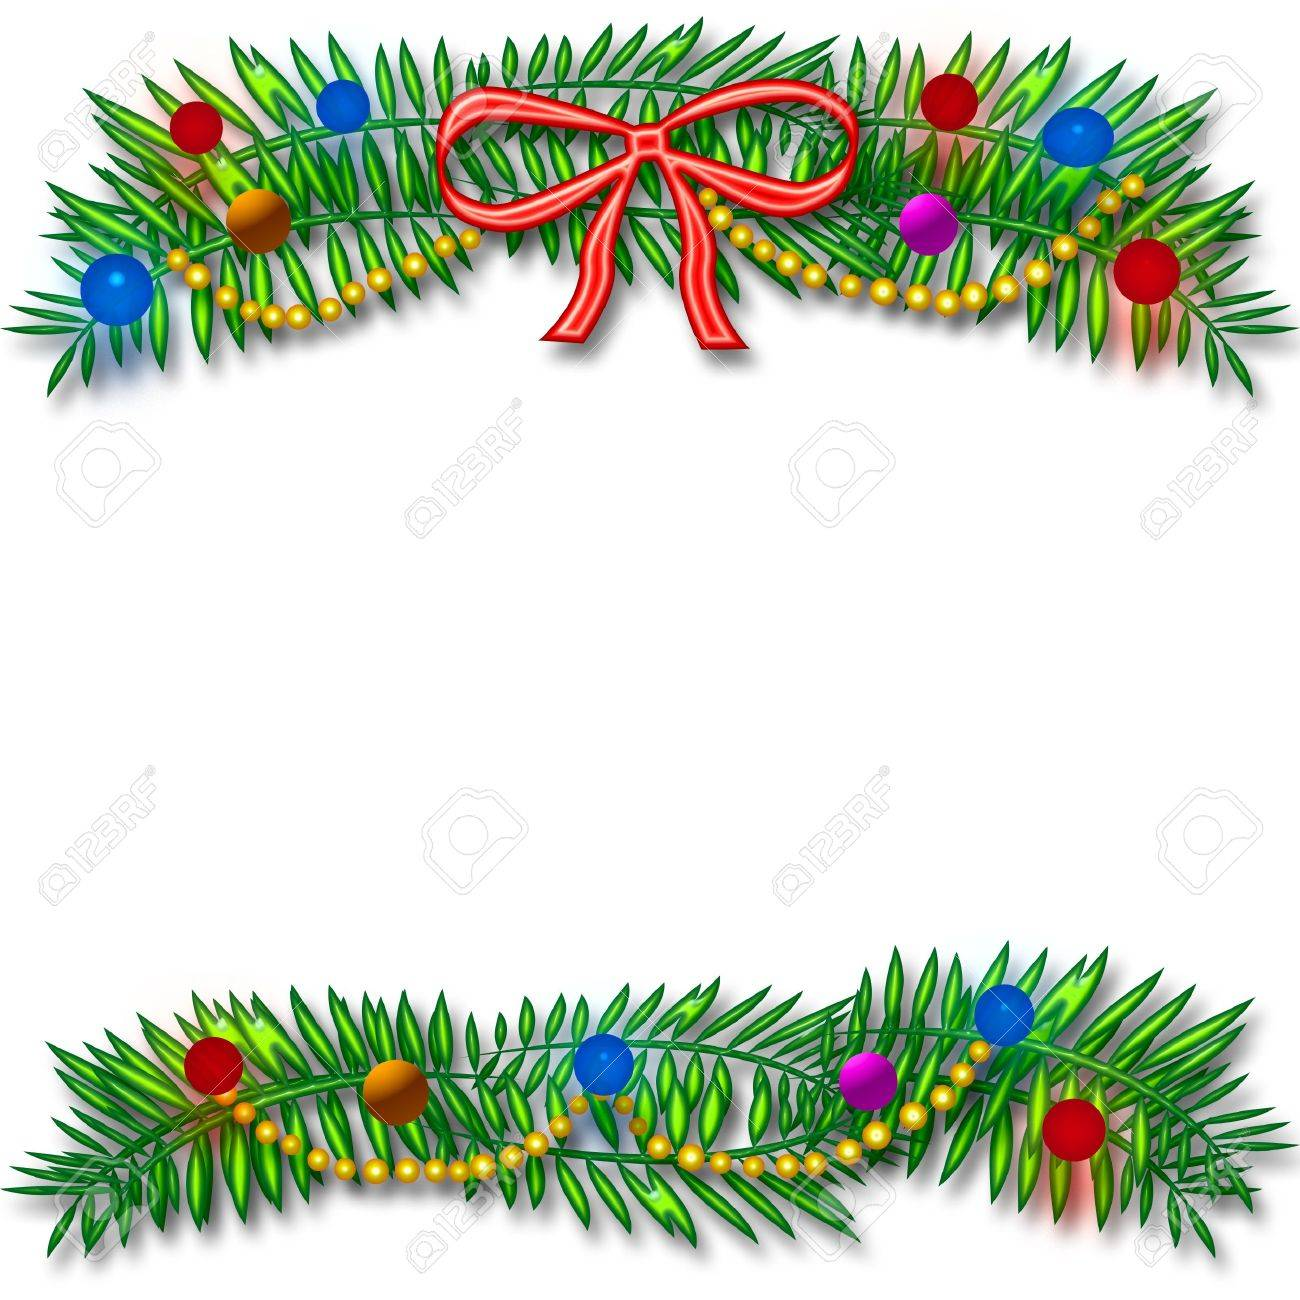 Christmas ornament frames - Picture Frame Christmas Ornaments Christmas Frame Colorful Ornaments And Beads Around Blank Center Stock Photo